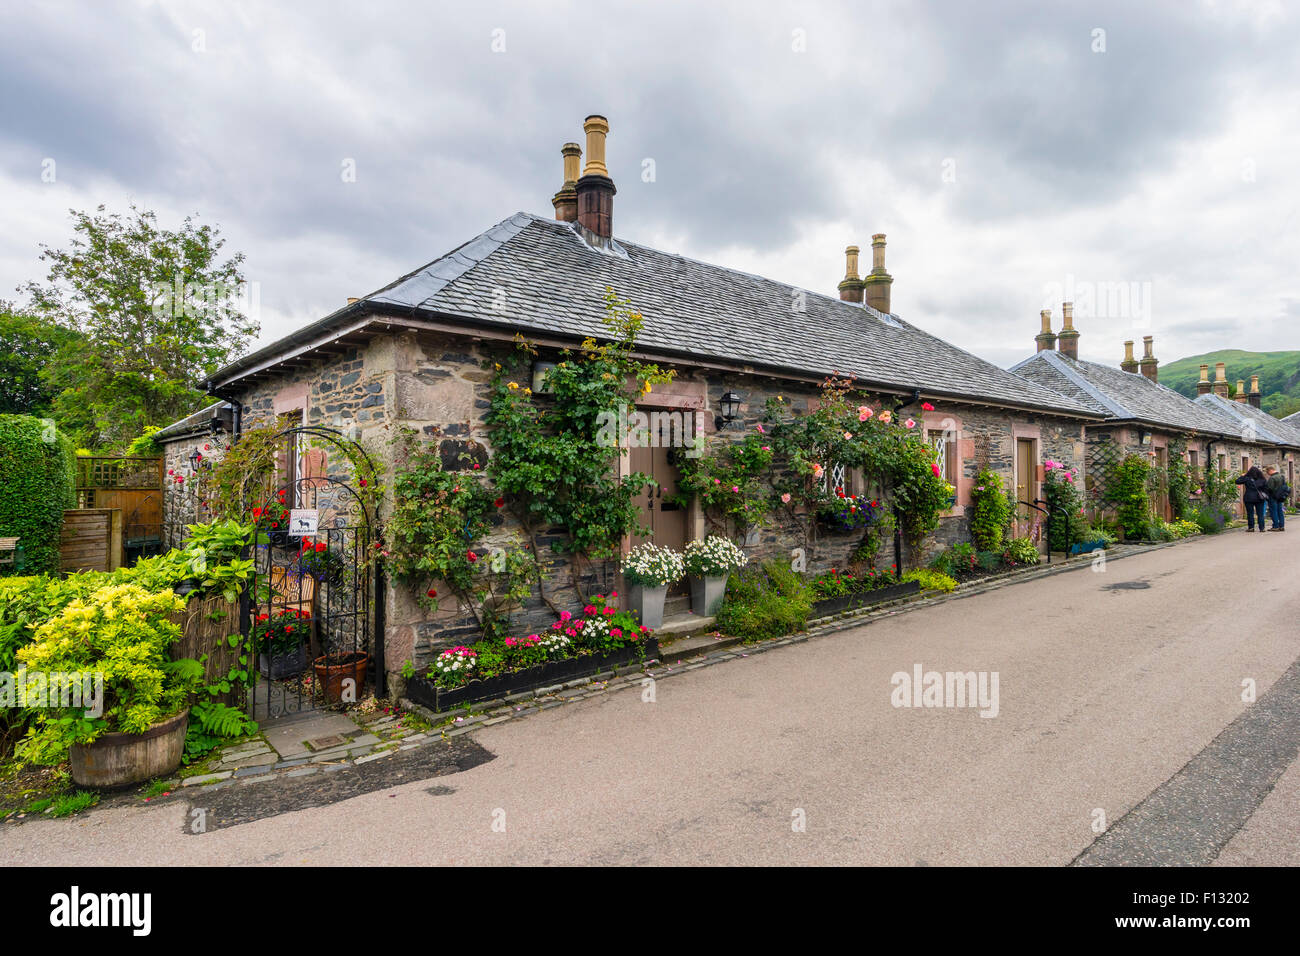 Traditional old stone built cottages in village of Luss at Loch Lomond, Argyll and Bute, Scotland - Stock Image